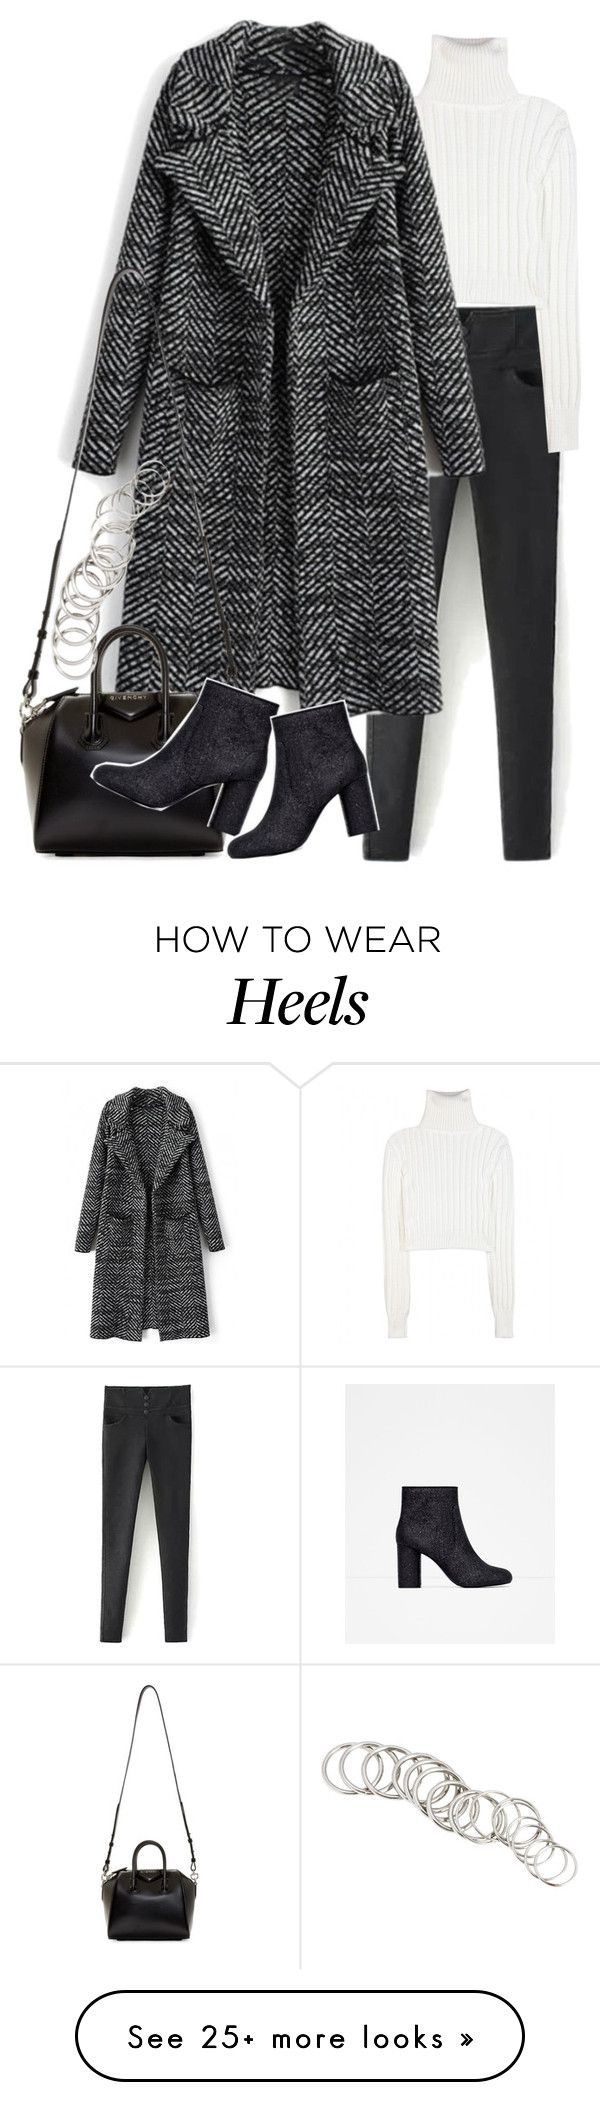 """BeautifulHalo #23"" by nikka-phillips on Polyvore featuring Calvin Klein Collection, Givenchy, Zara, H&M and bhalo"